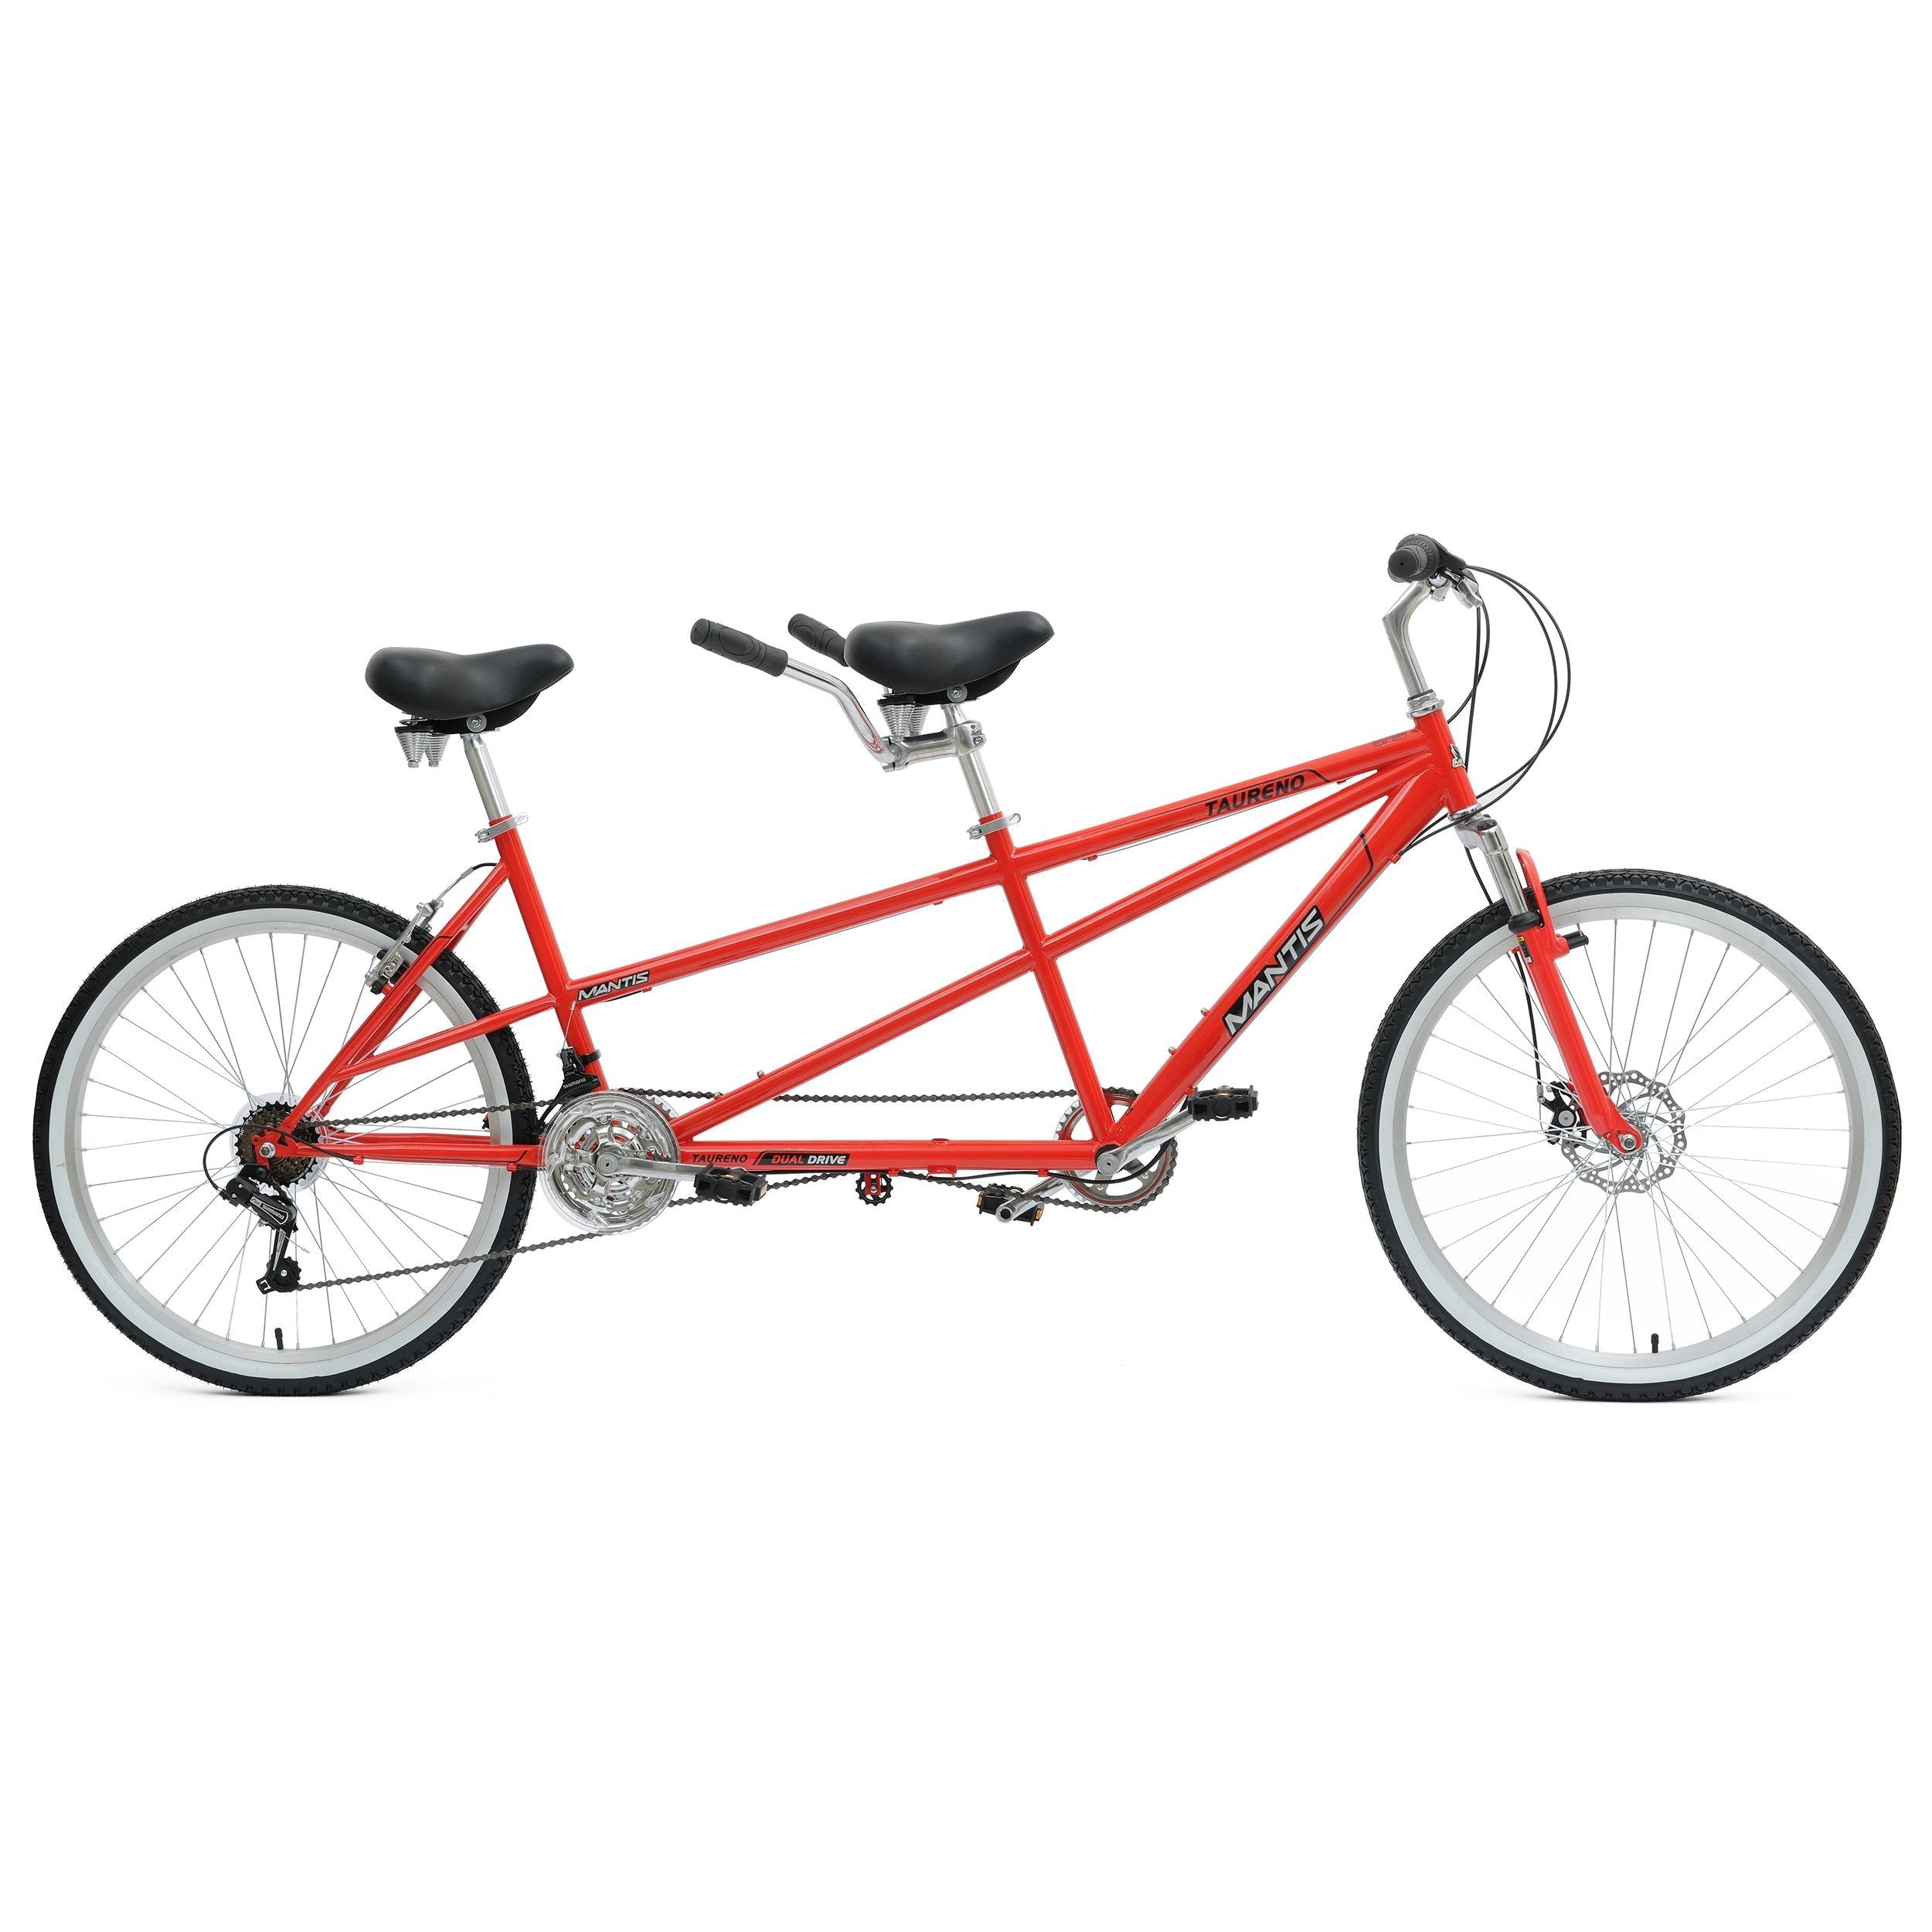 Mantis Taureno 18 Speed 26 Inch Tandem Bicycle - Tandem Bicycle Ridetique.com